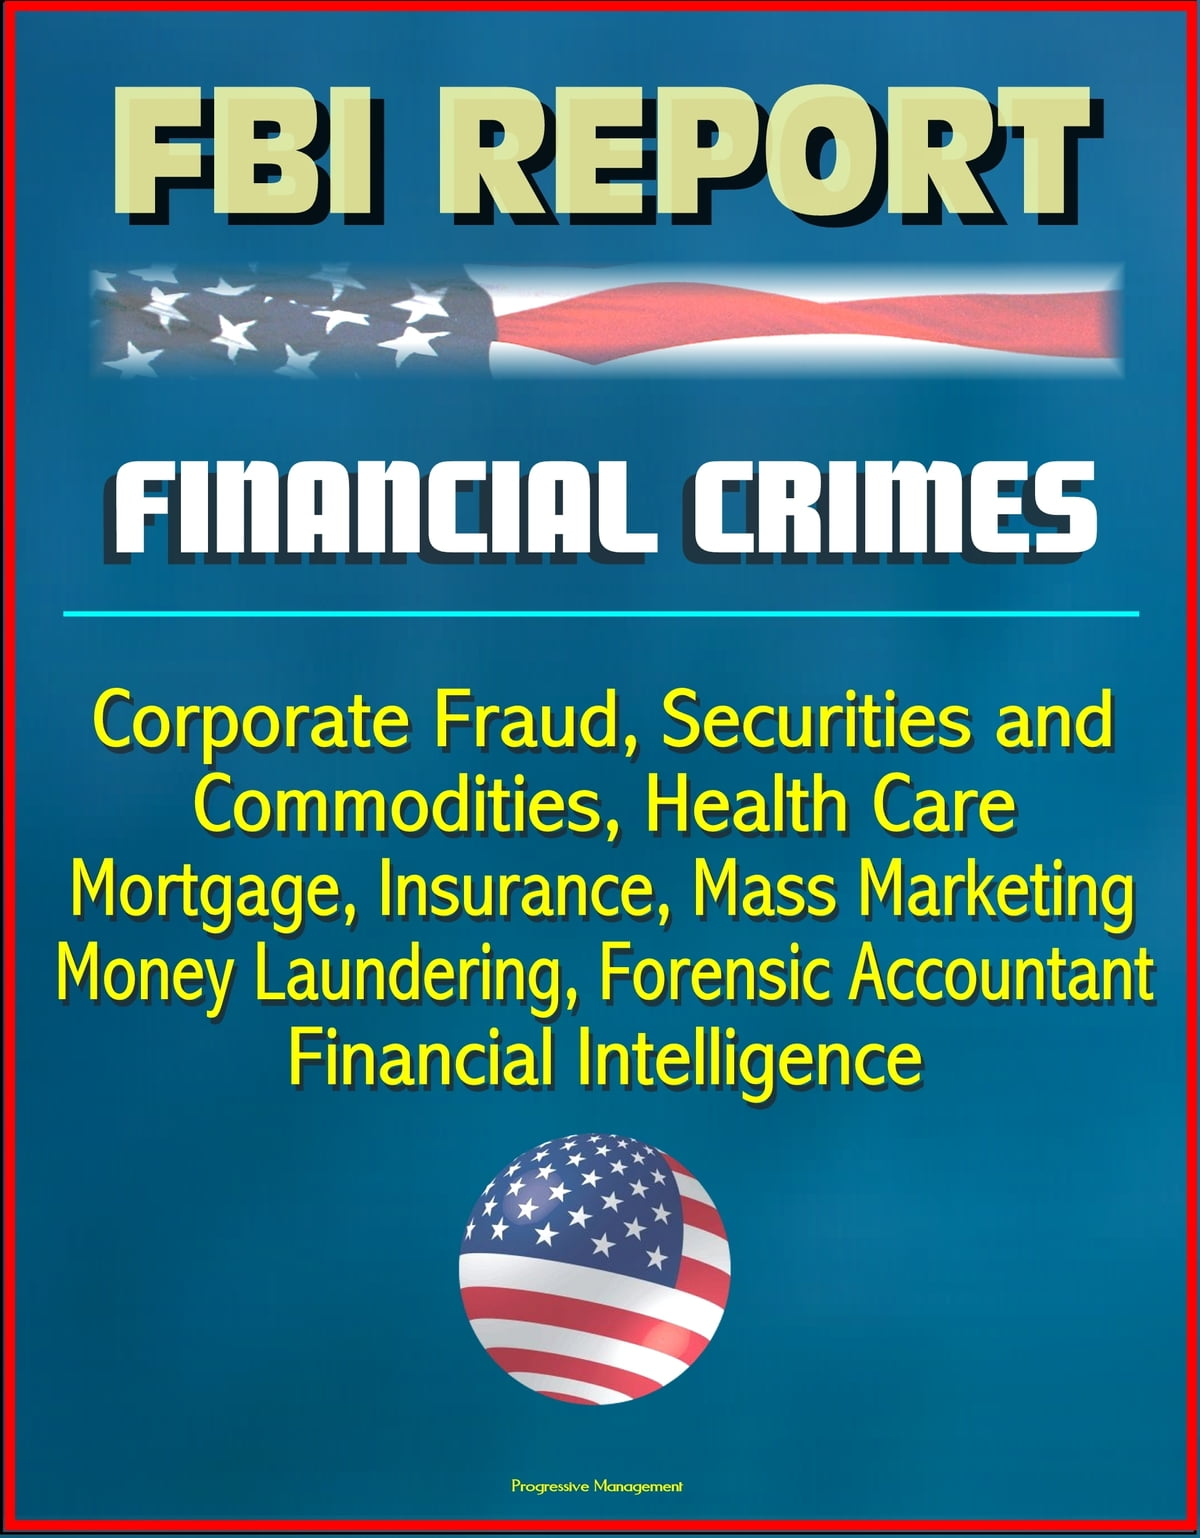 Fbi Report Financial Crimes Corporate Fraud Securities And Commodities Health Care Mortgage Insurance Mass Marketing Money Laundering Forensic Accountant Financial Intelligence Ebook By Progressive Management 9781301329984 Rakuten Kobo